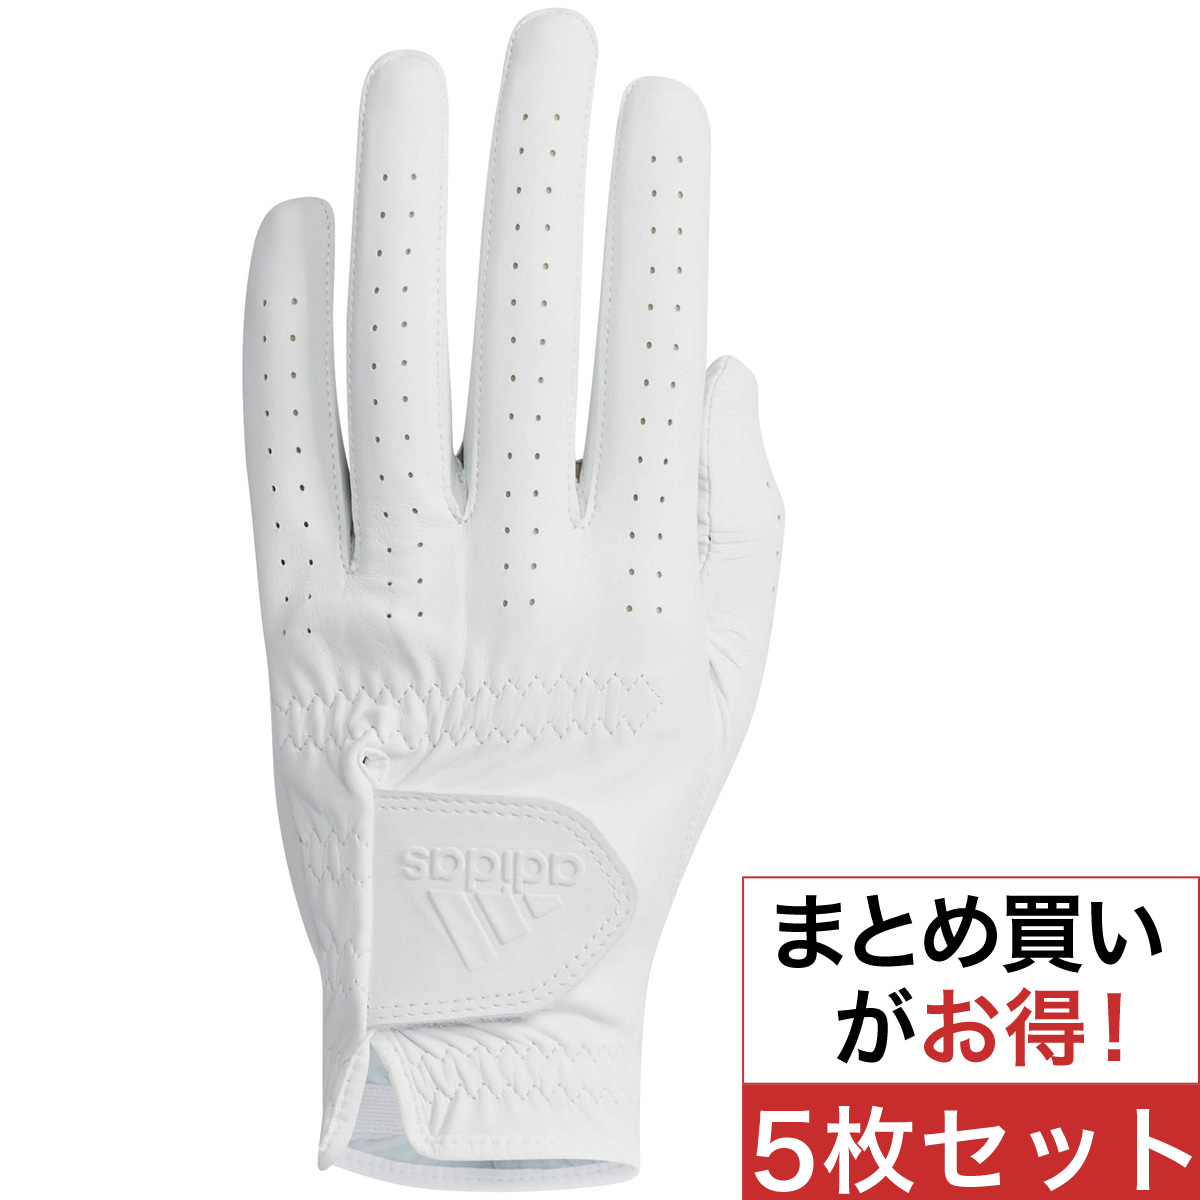 ULTIMATE Leather グローブ 5枚セット